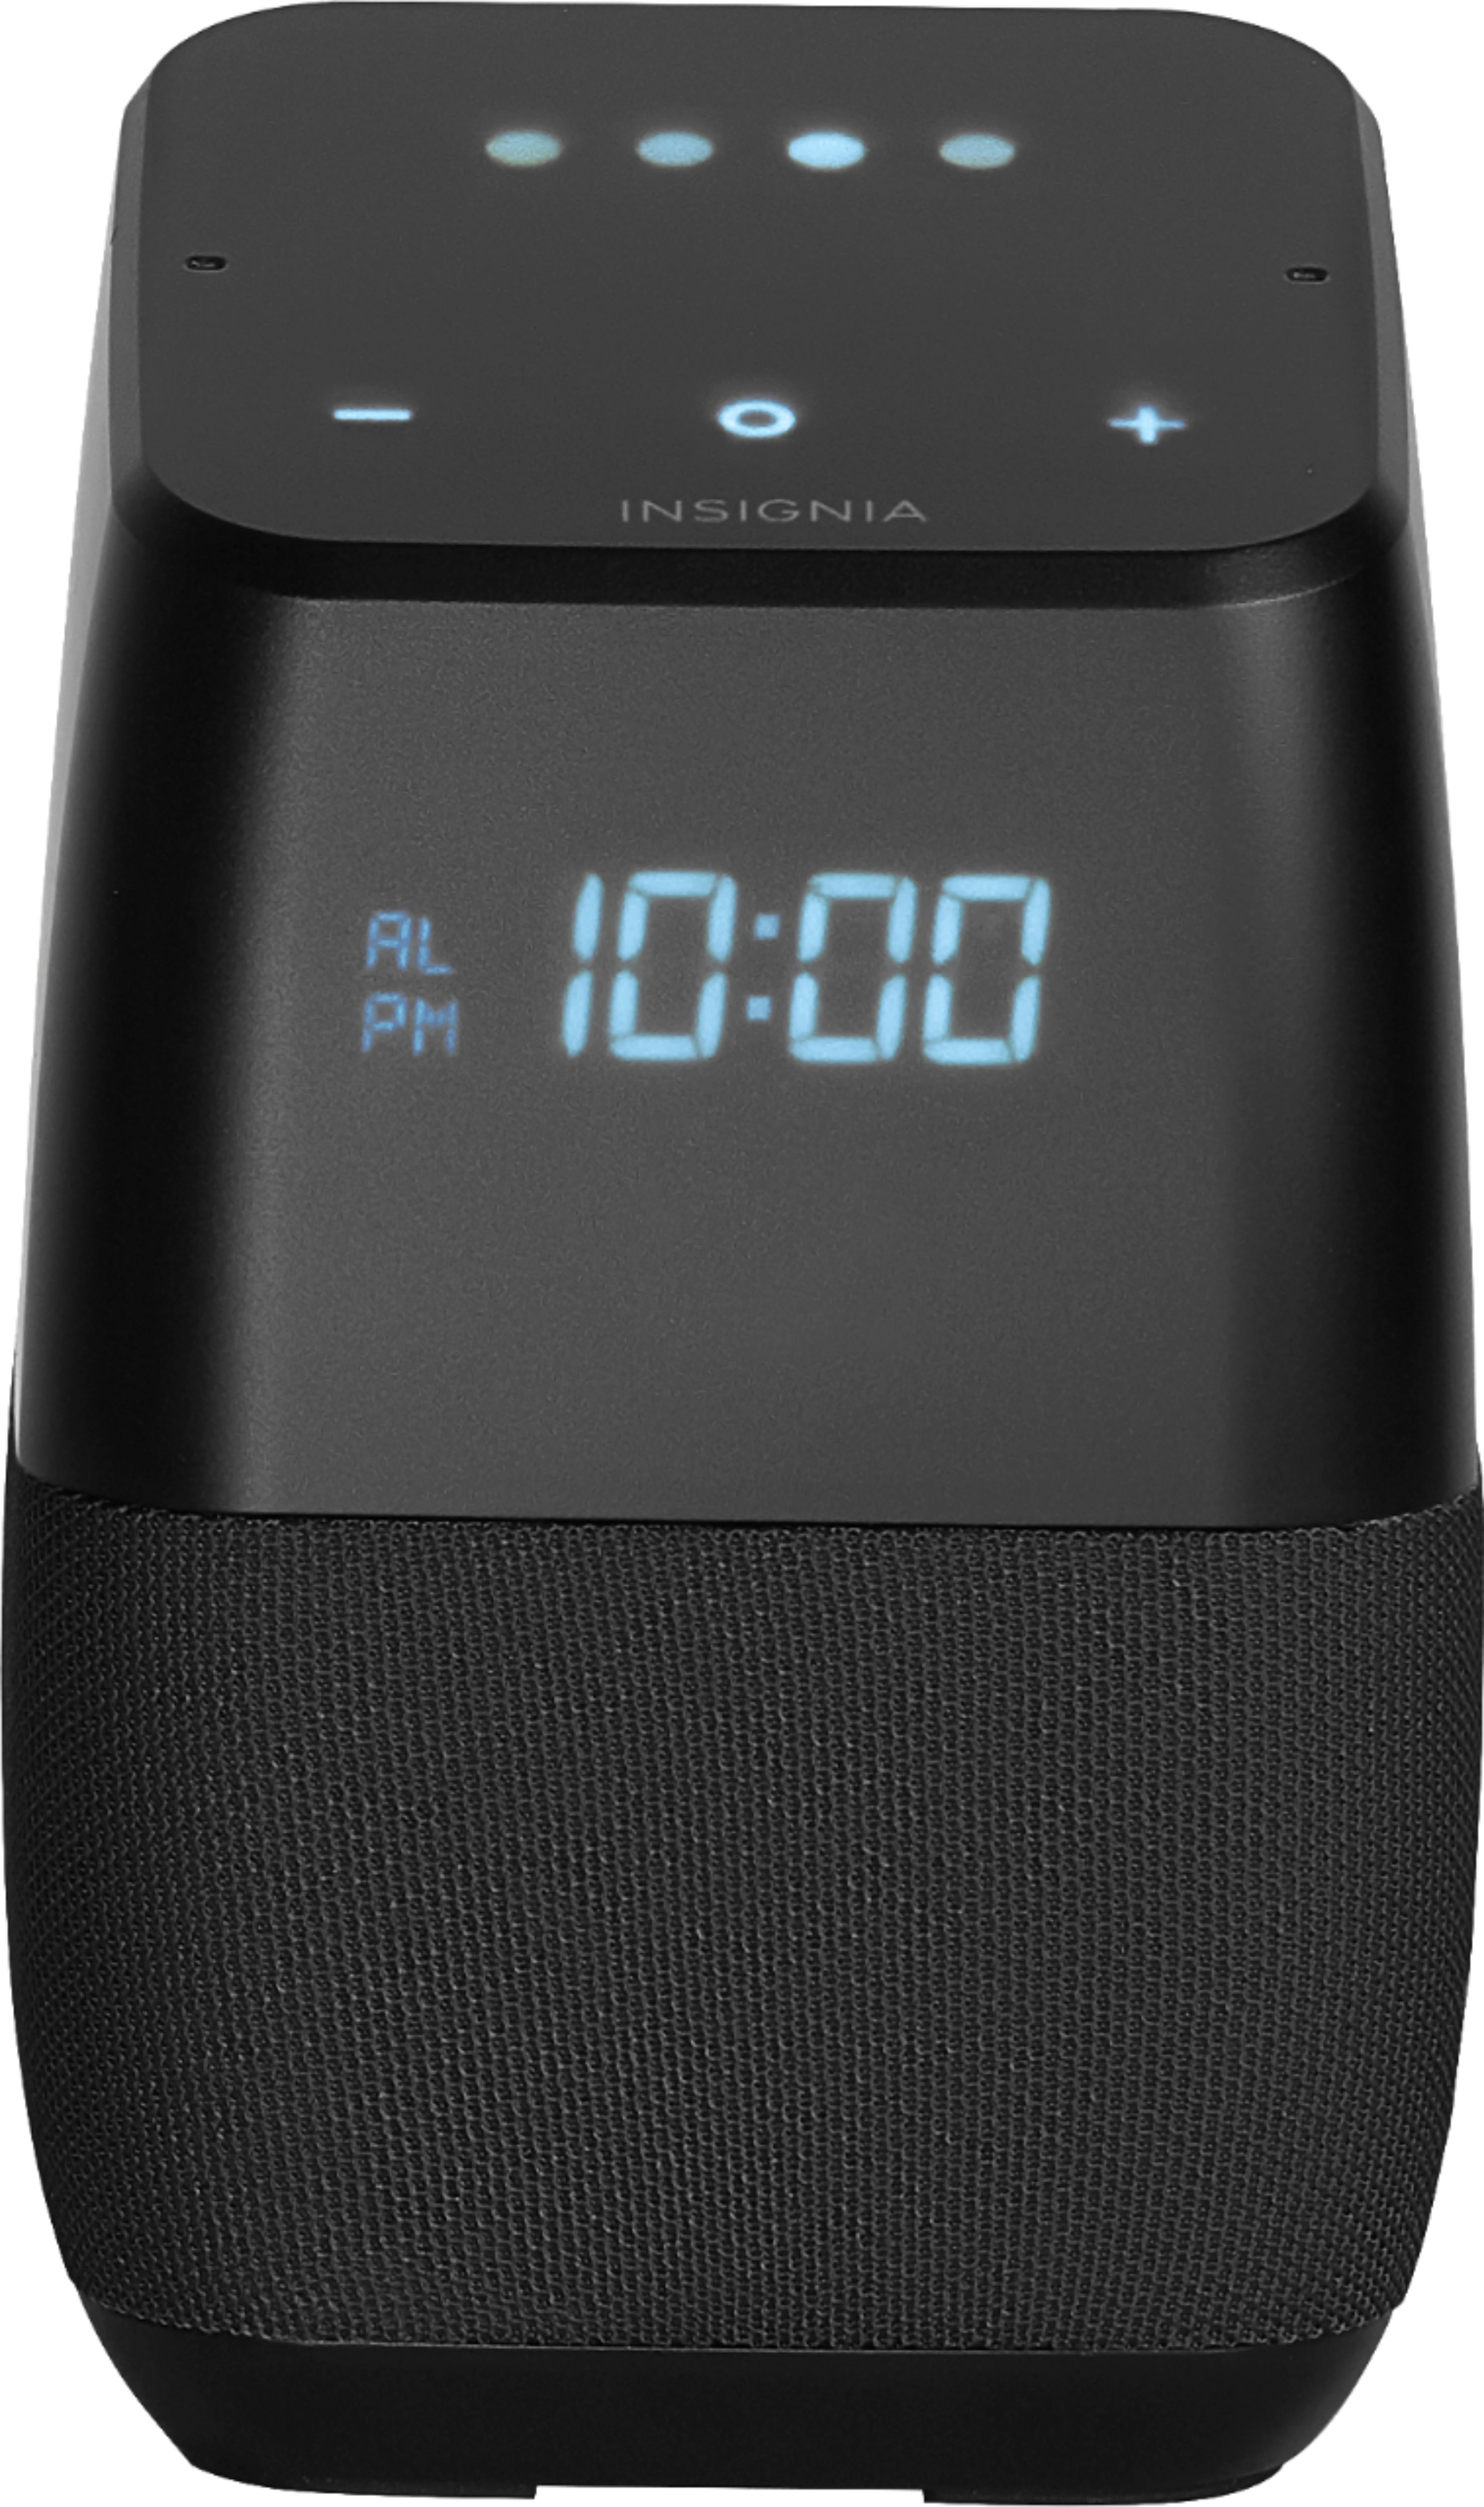 Buy Clock Insignia Voice Smart Bluetooth Speaker And Alarm Clock With Google Assistant Black